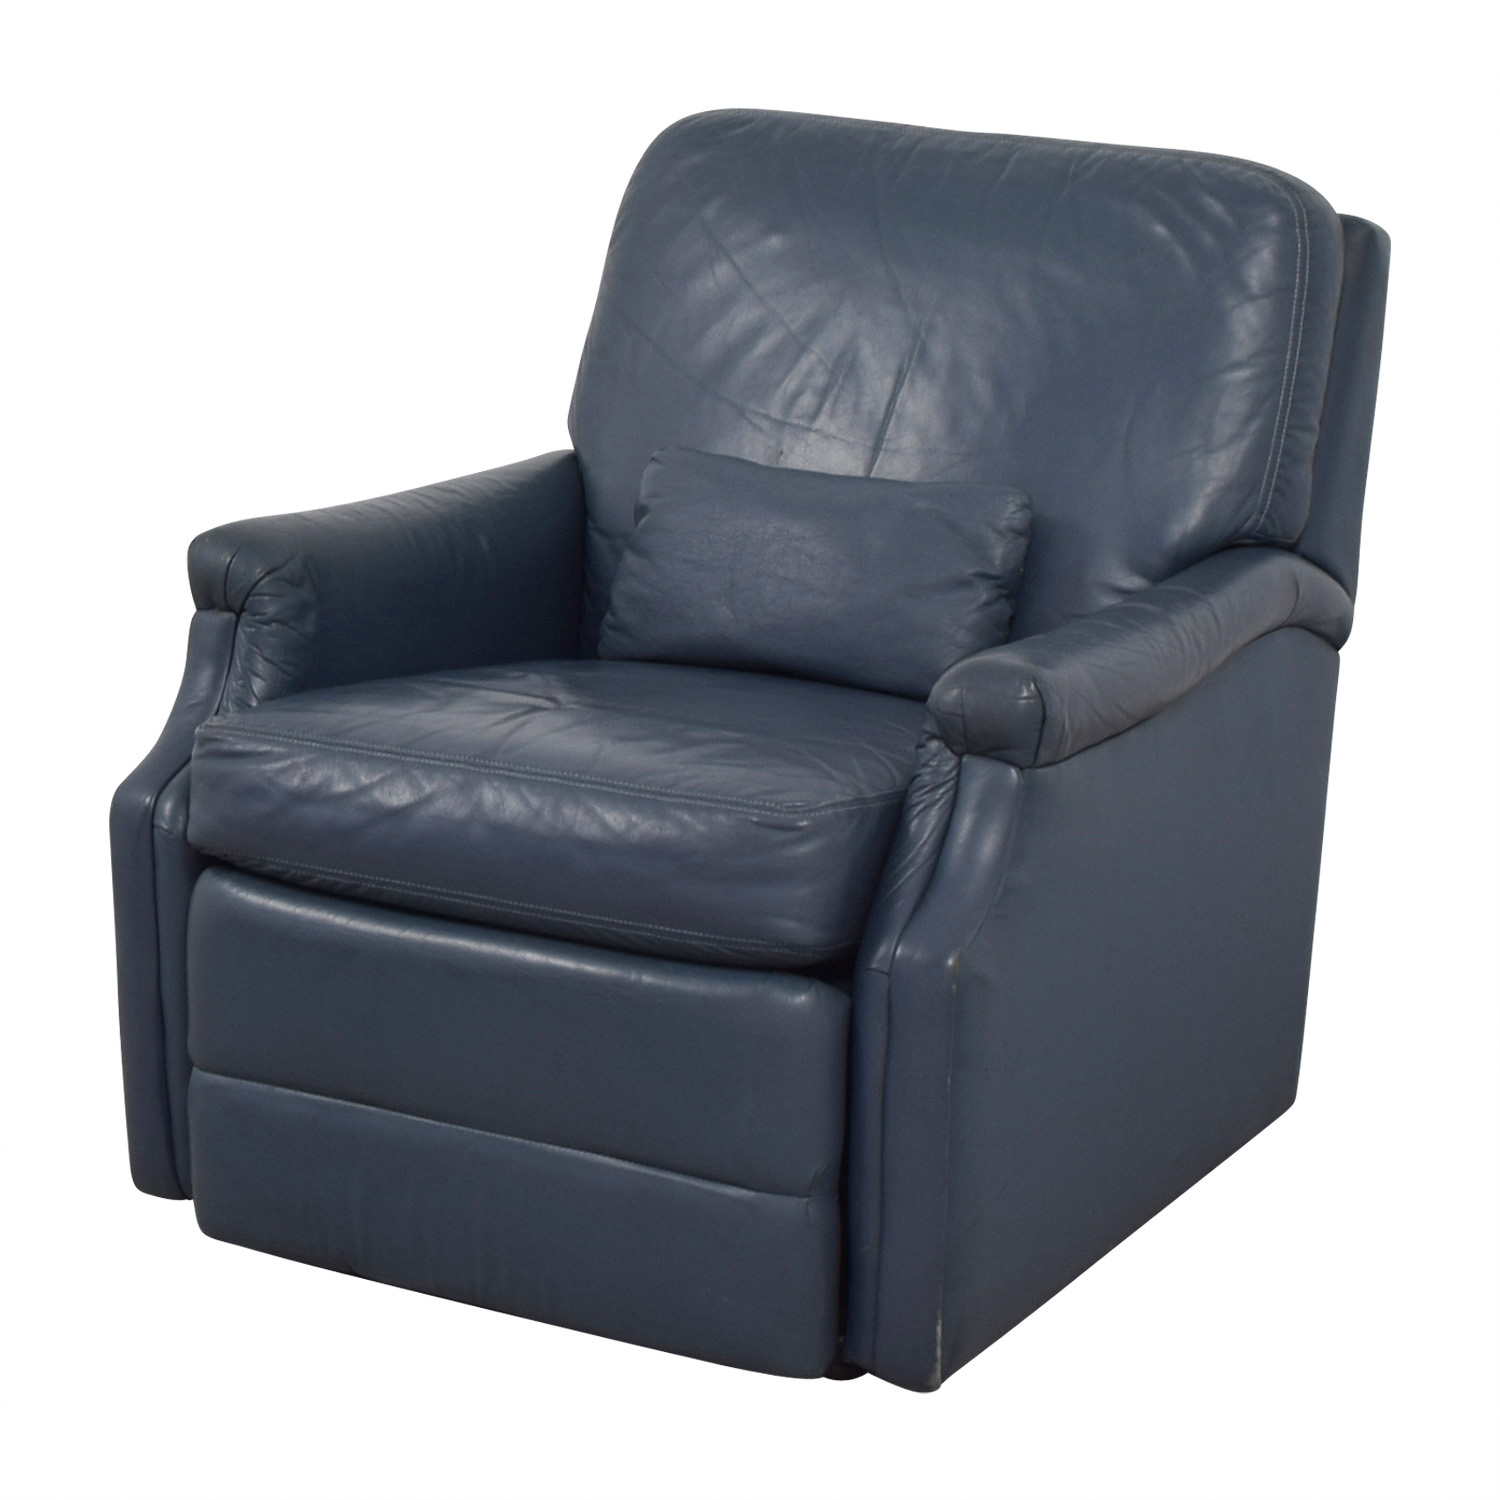 shop Barcalounger Manual Reclining Arm Chair Barcalounger Recliners